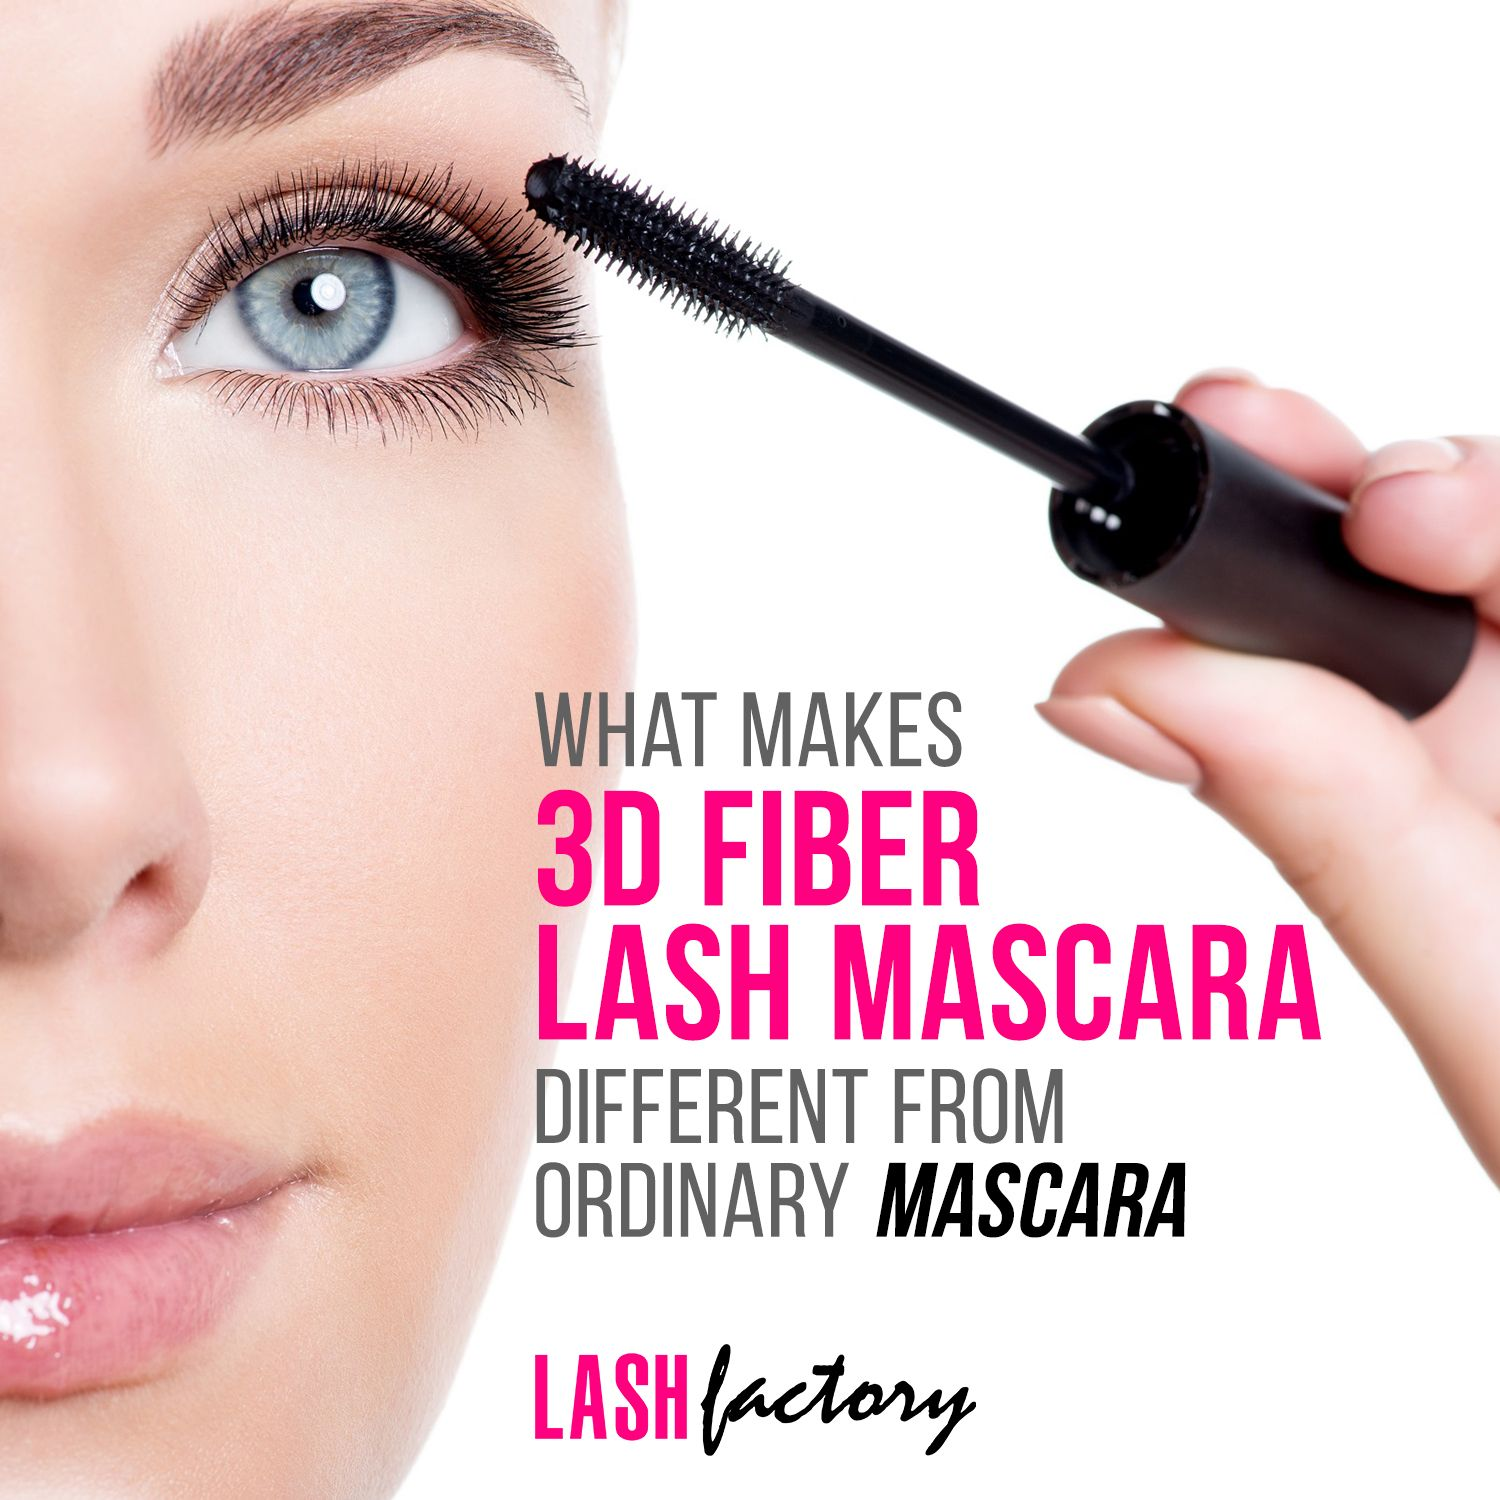 what makes 3d fiber lash mascara different from other